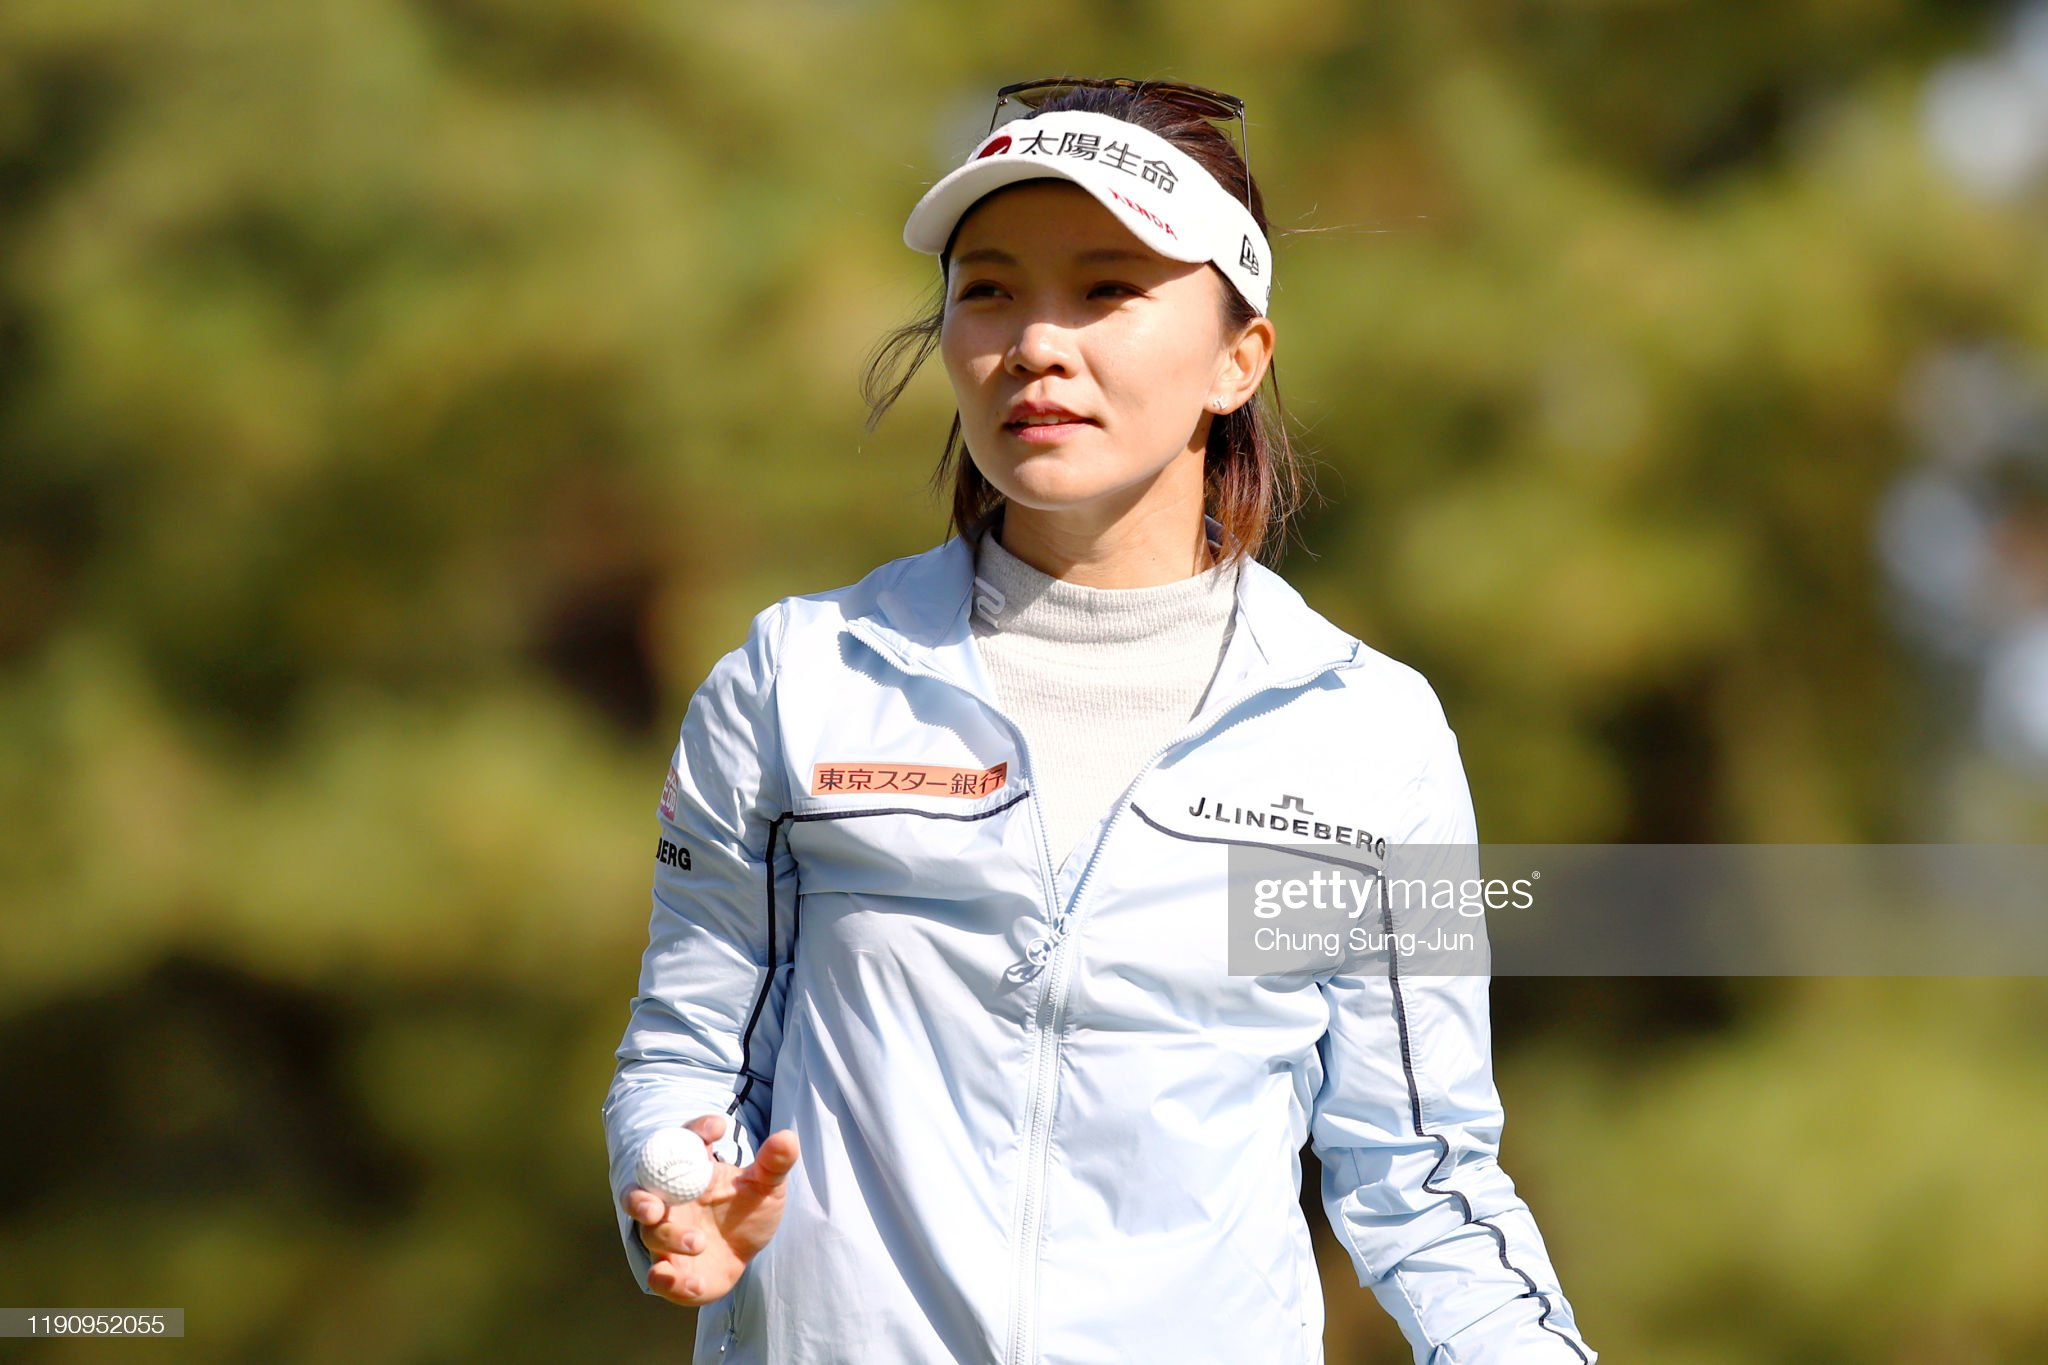 https://media.gettyimages.com/photos/teresa-lu-of-chinese-taipei-acknowledges-the-gallery-after-the-birdie-picture-id1190952055?s=2048x2048